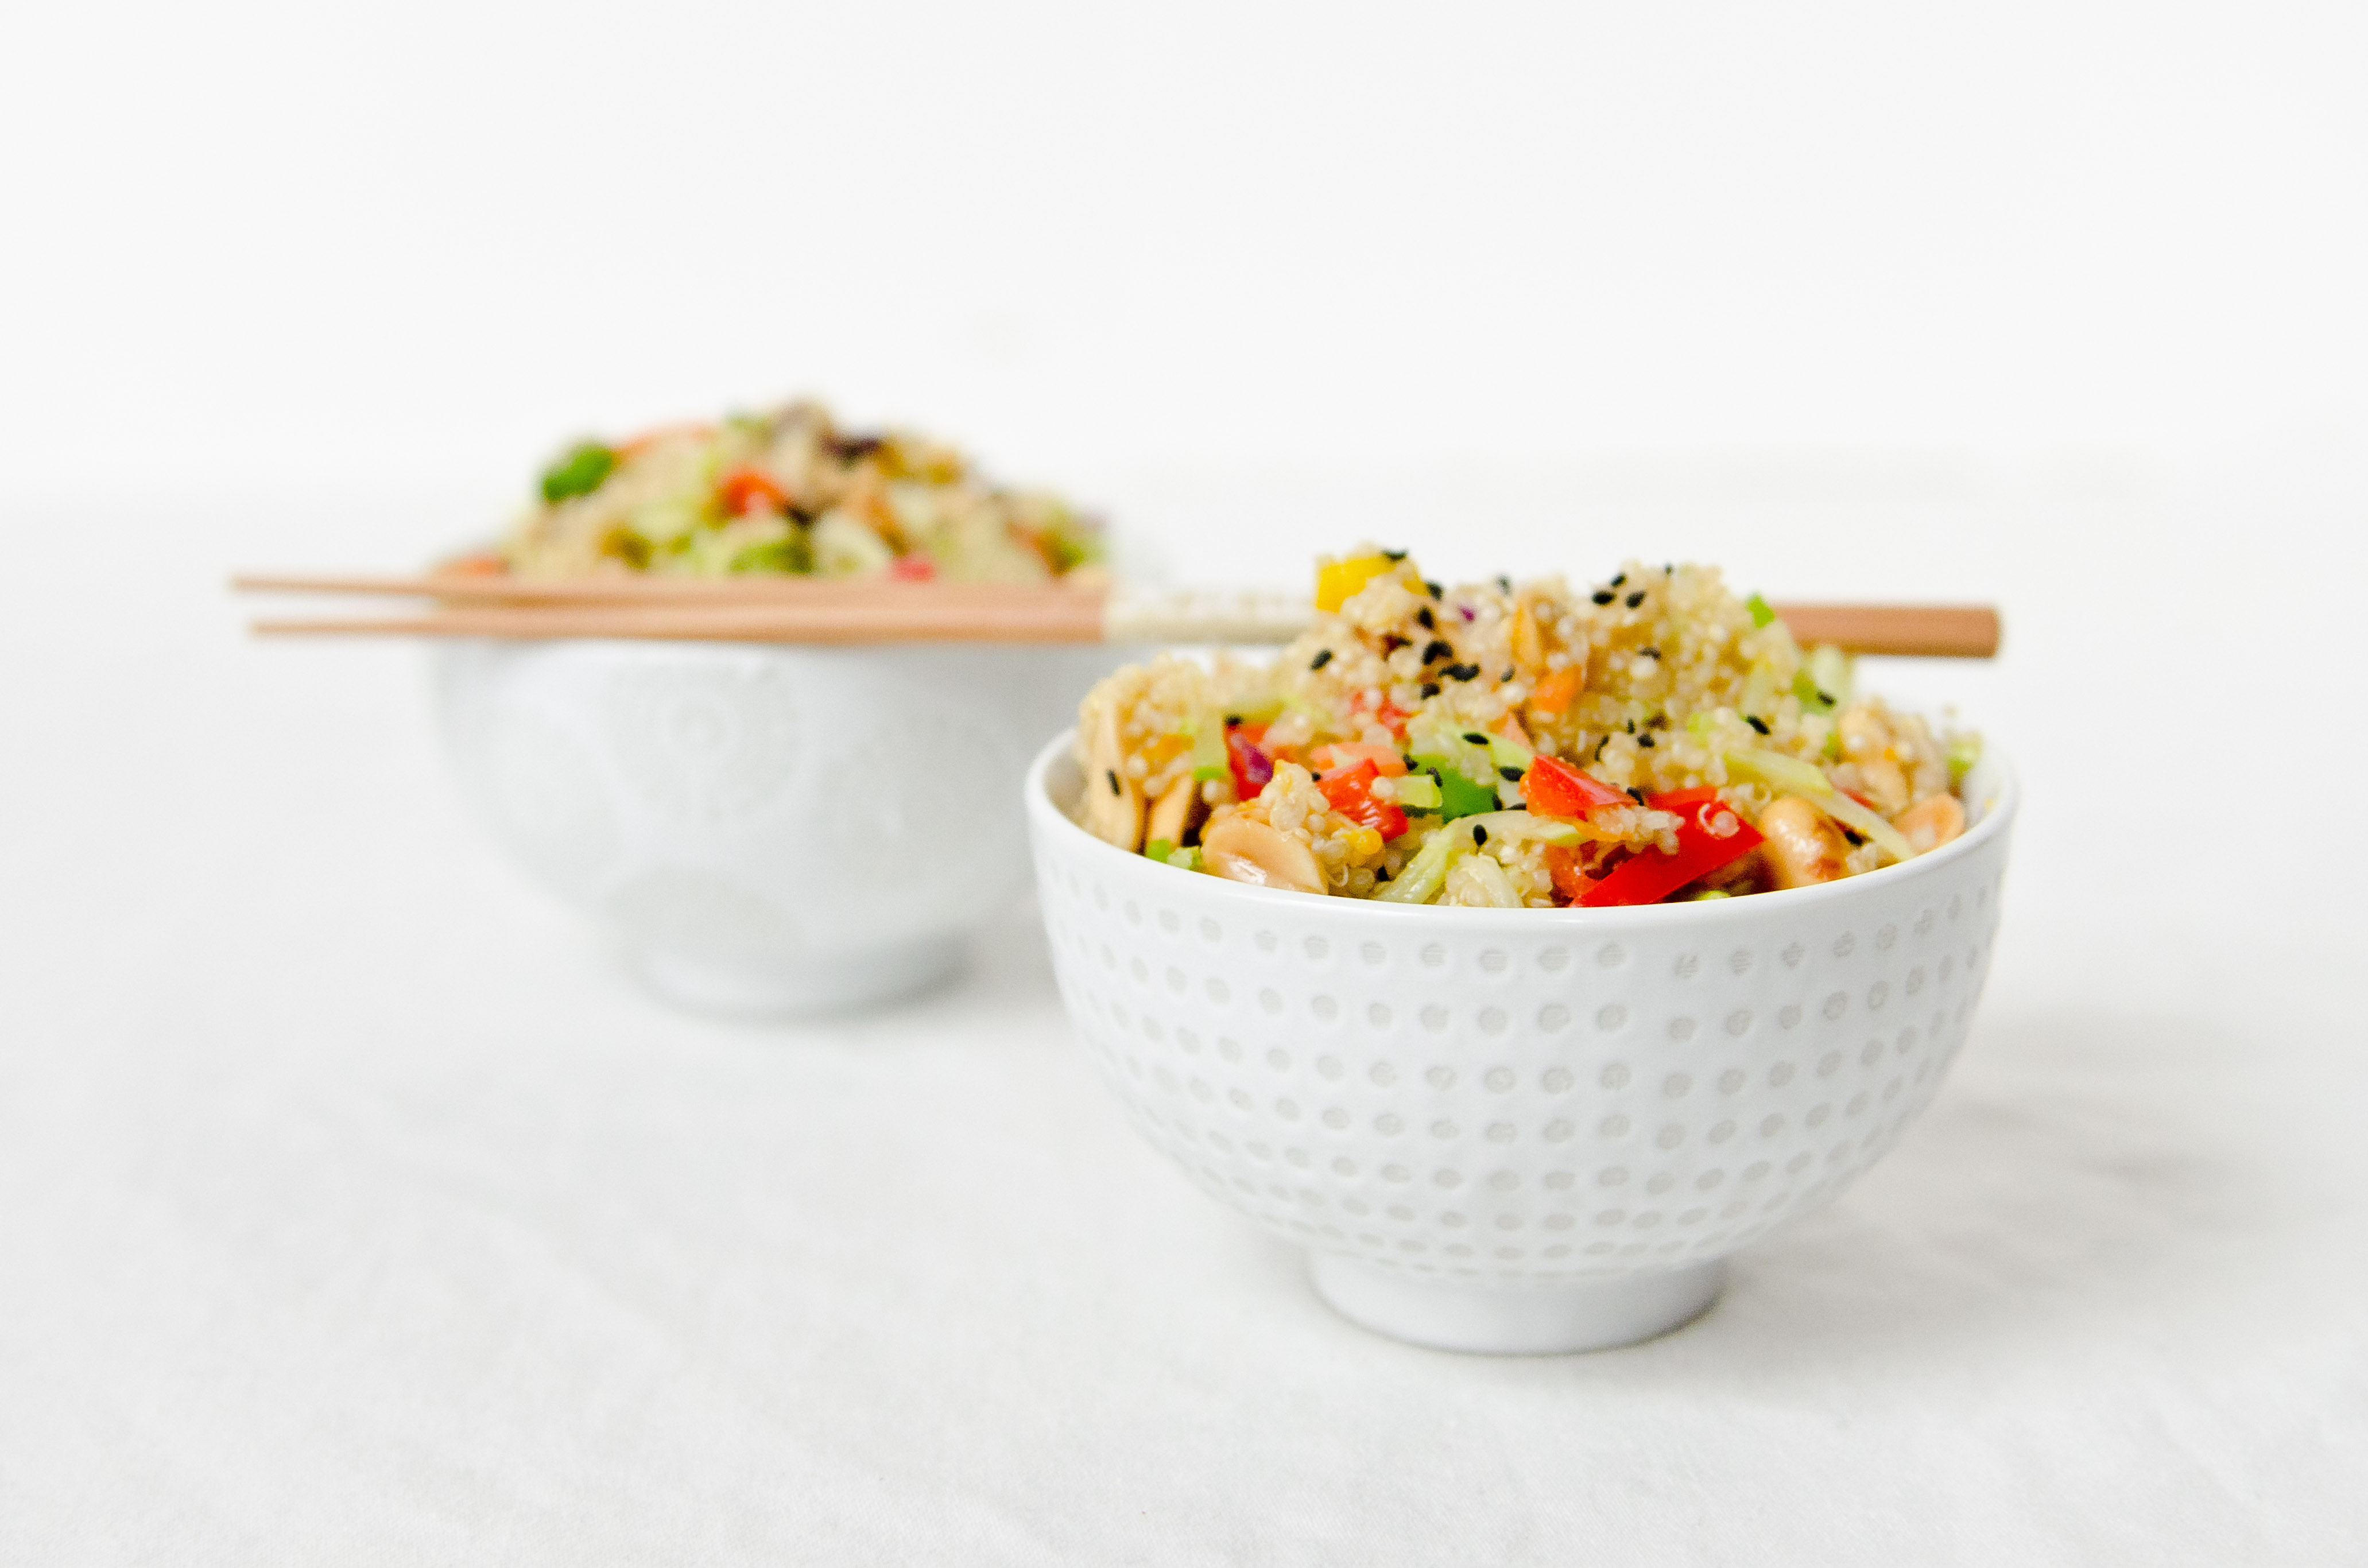 30 Healthy Vegetarian Lunch Ideas - The Fig Tree